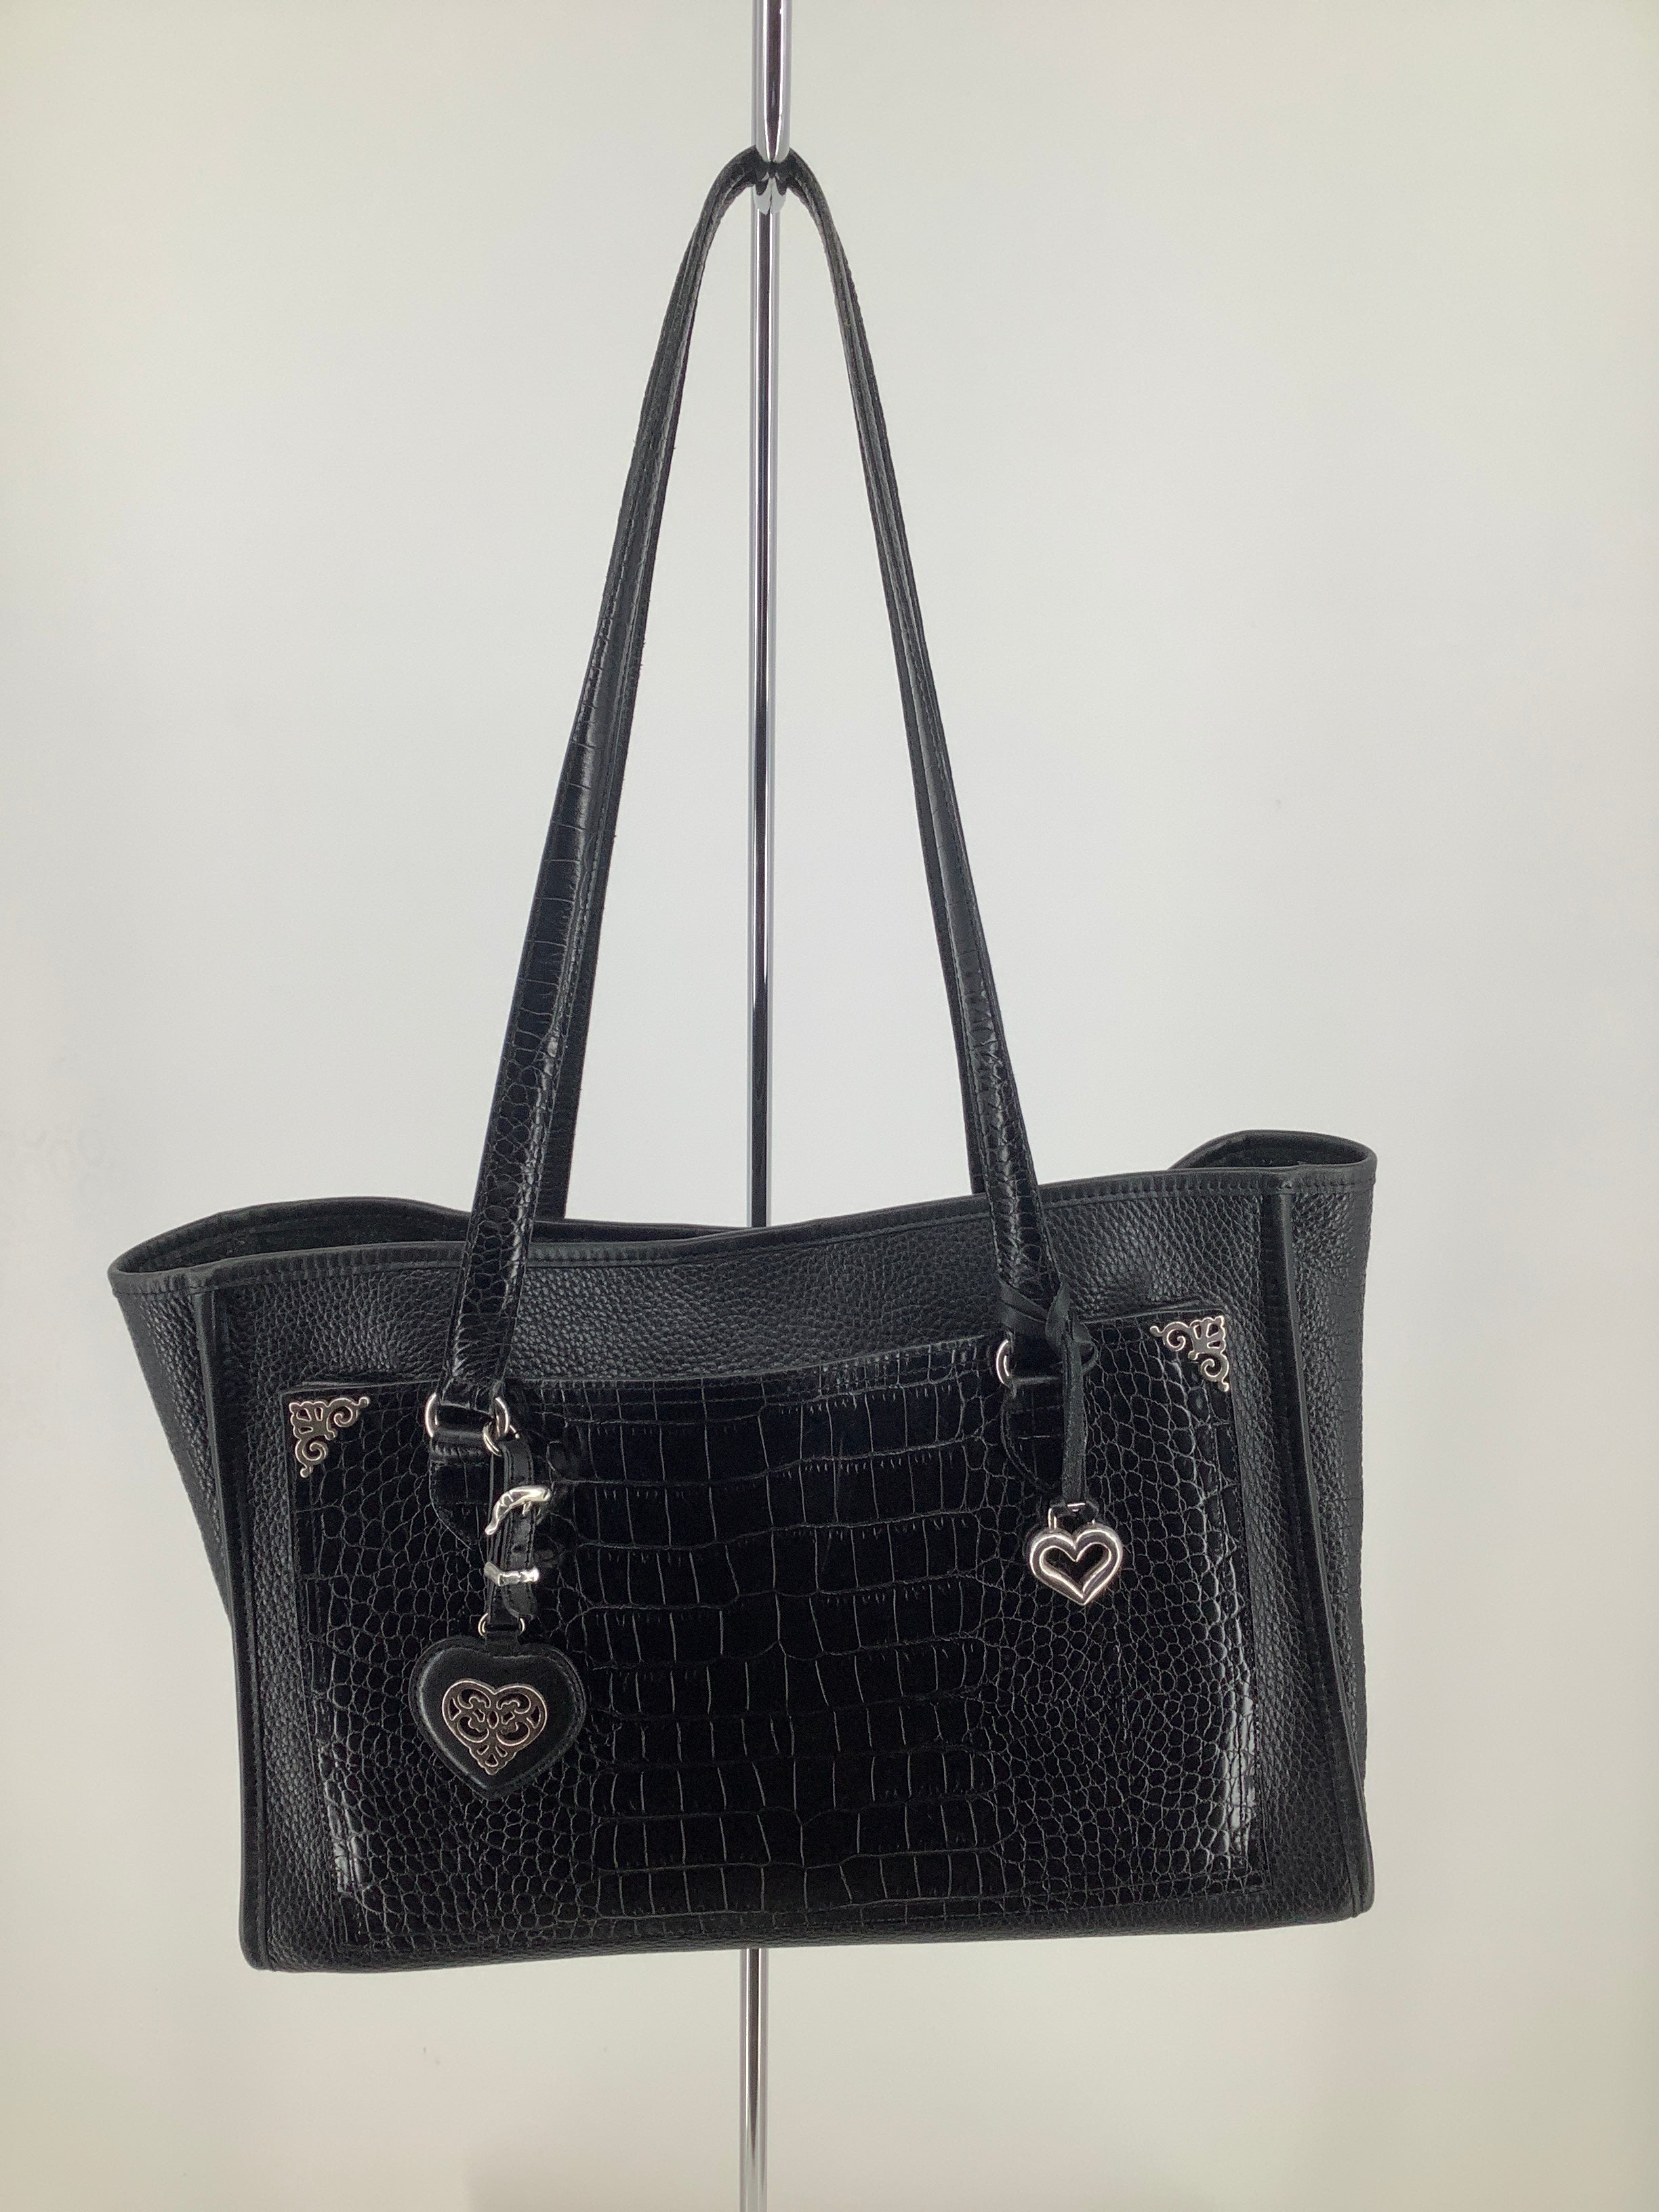 Primary Photo - brand: brighton , style: handbag designer, color: black , size: large , sku: 105-4940-6122